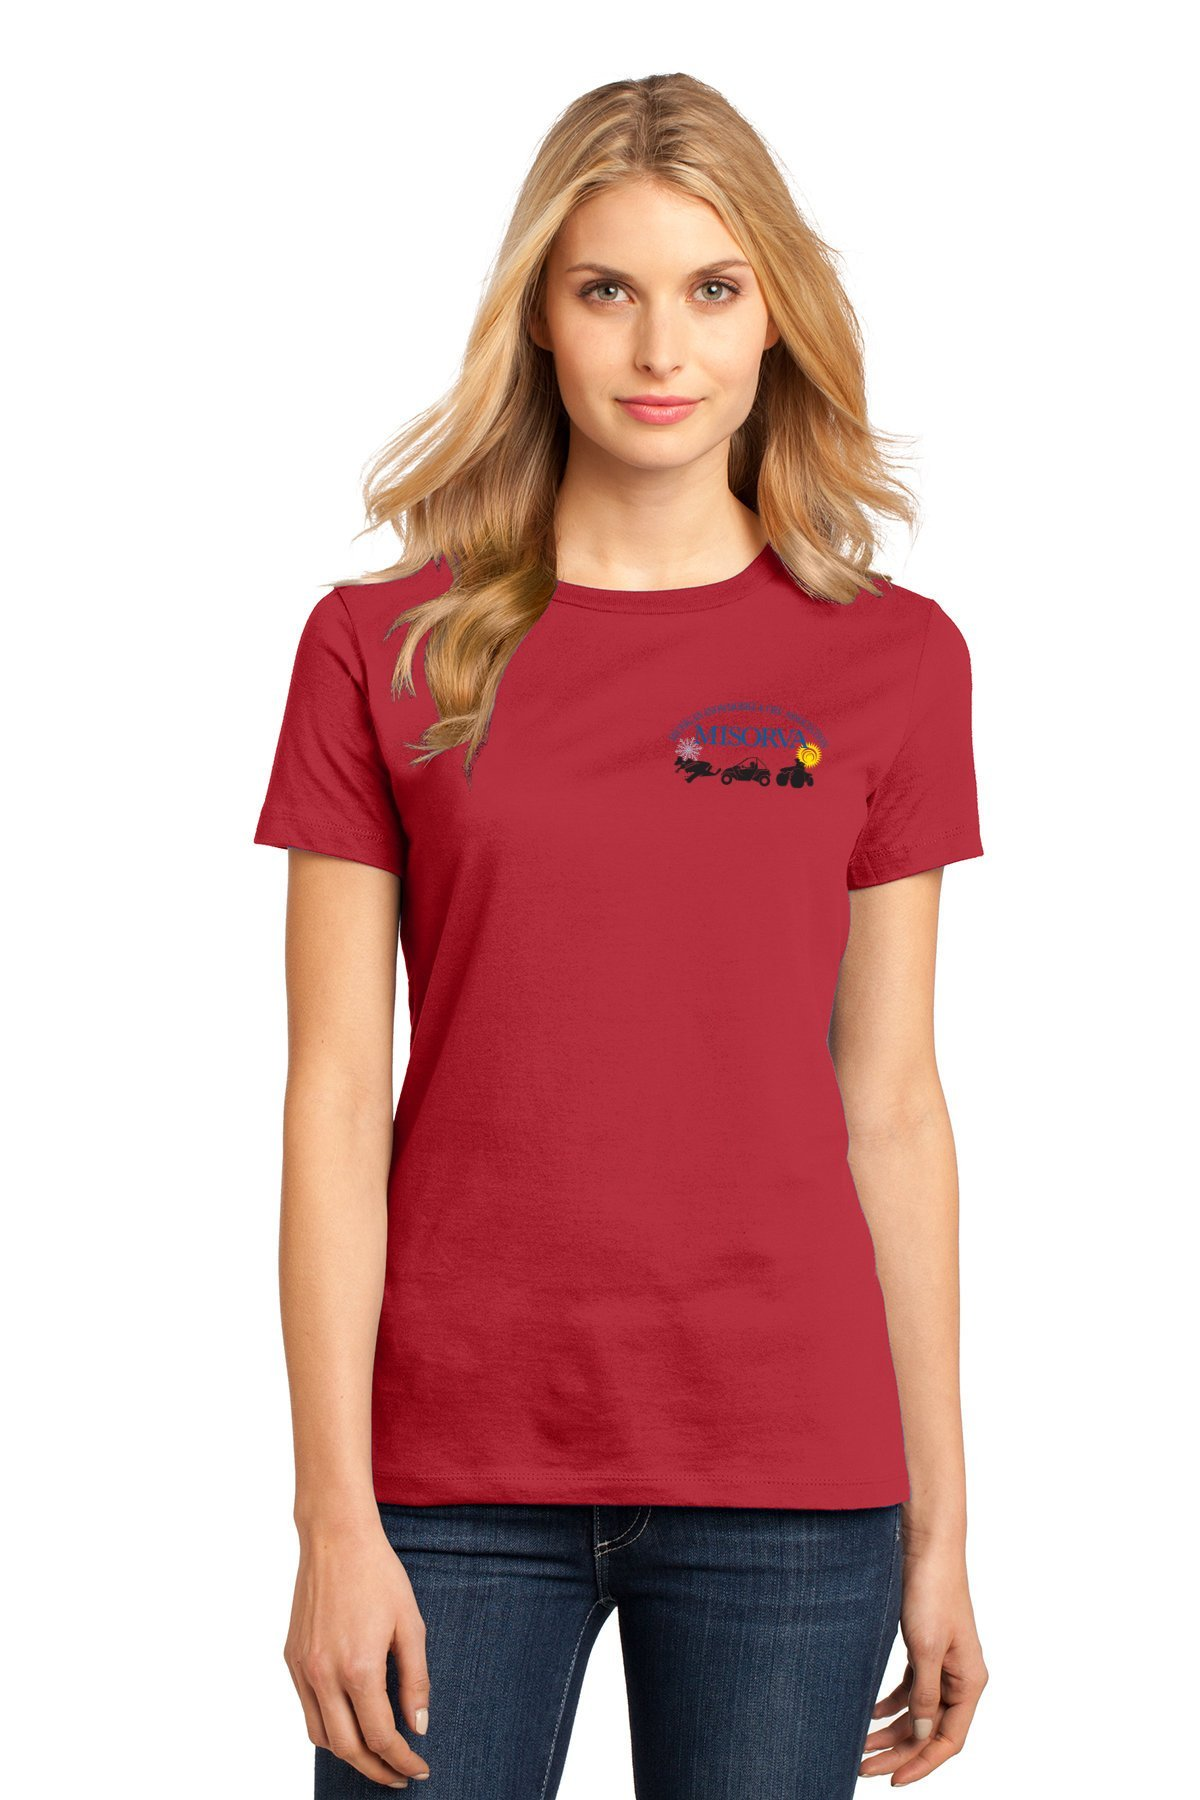 DM104L-womens-tee-red